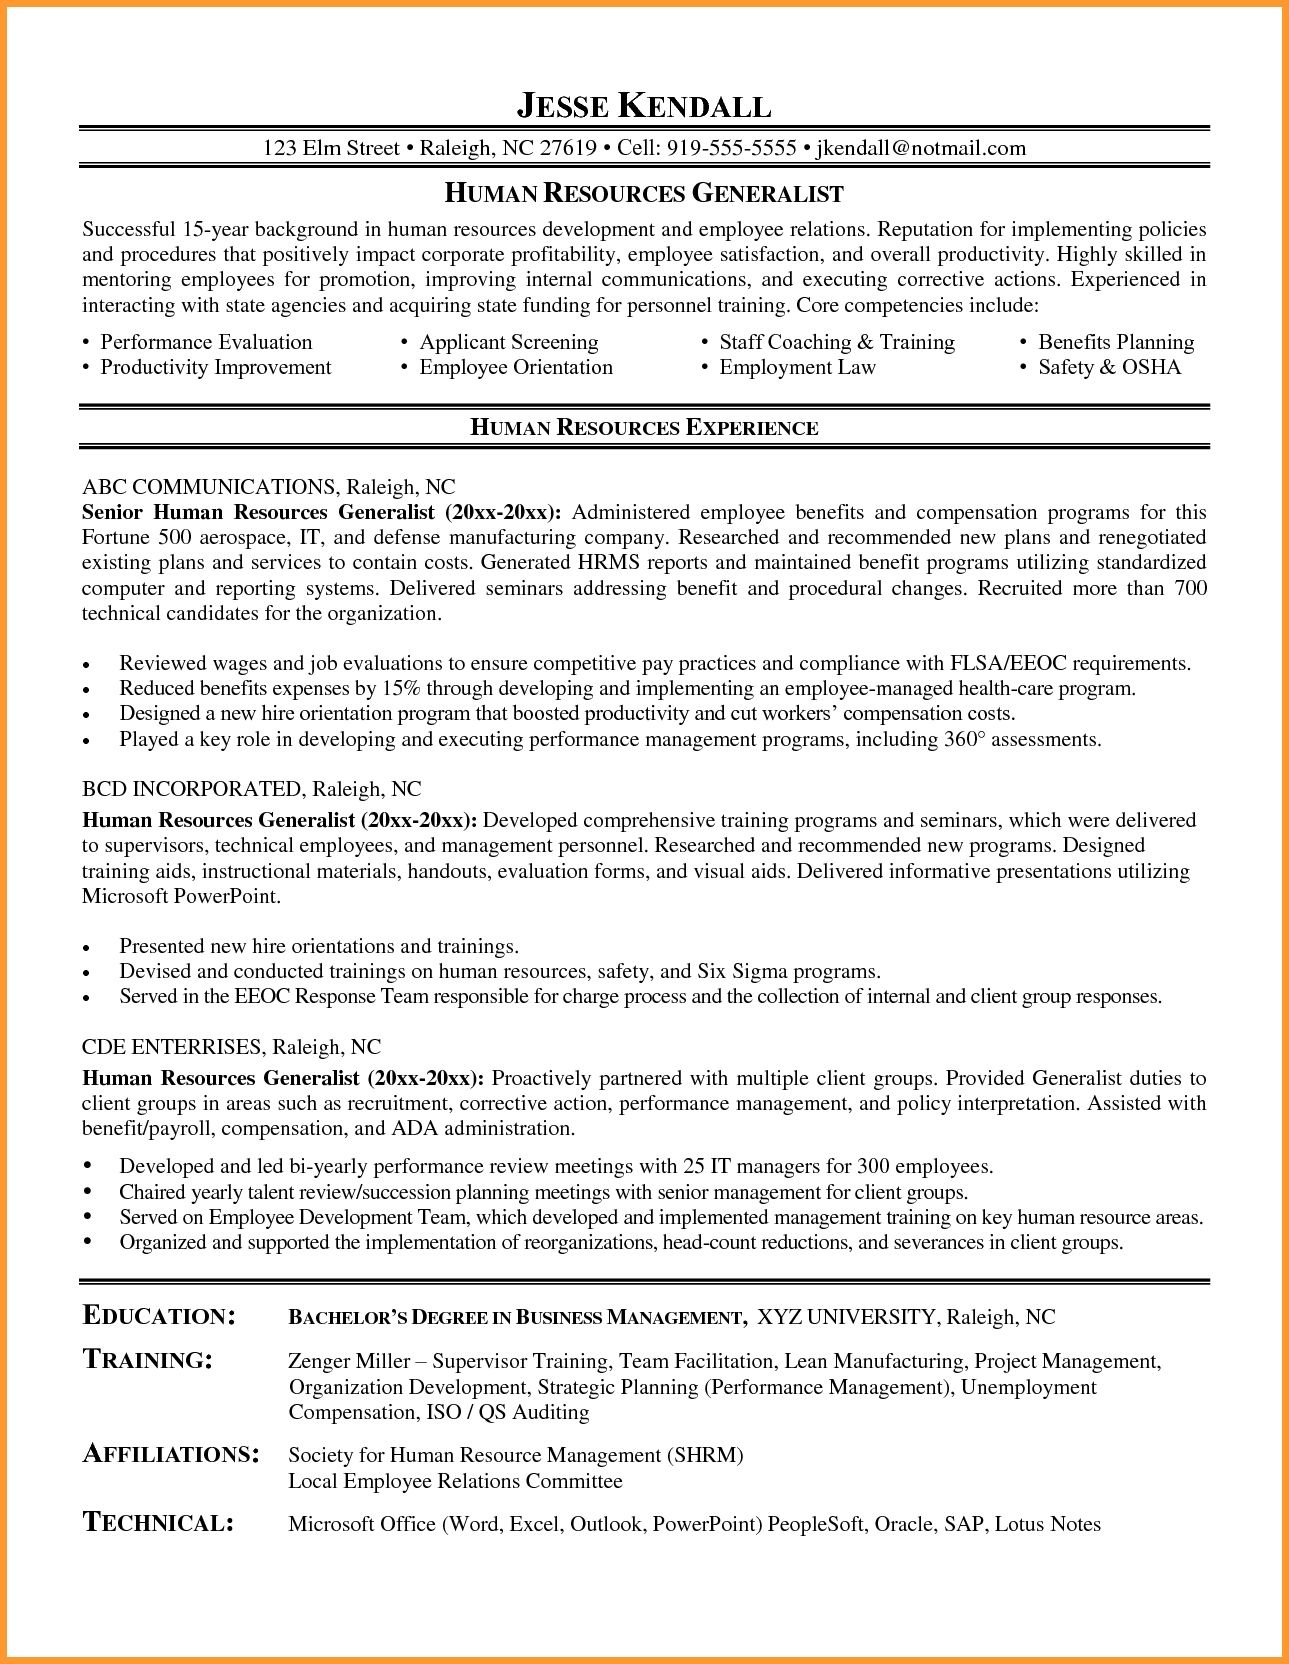 Resume Example Analyst Human Resources Resume Resume Examples Human Resources